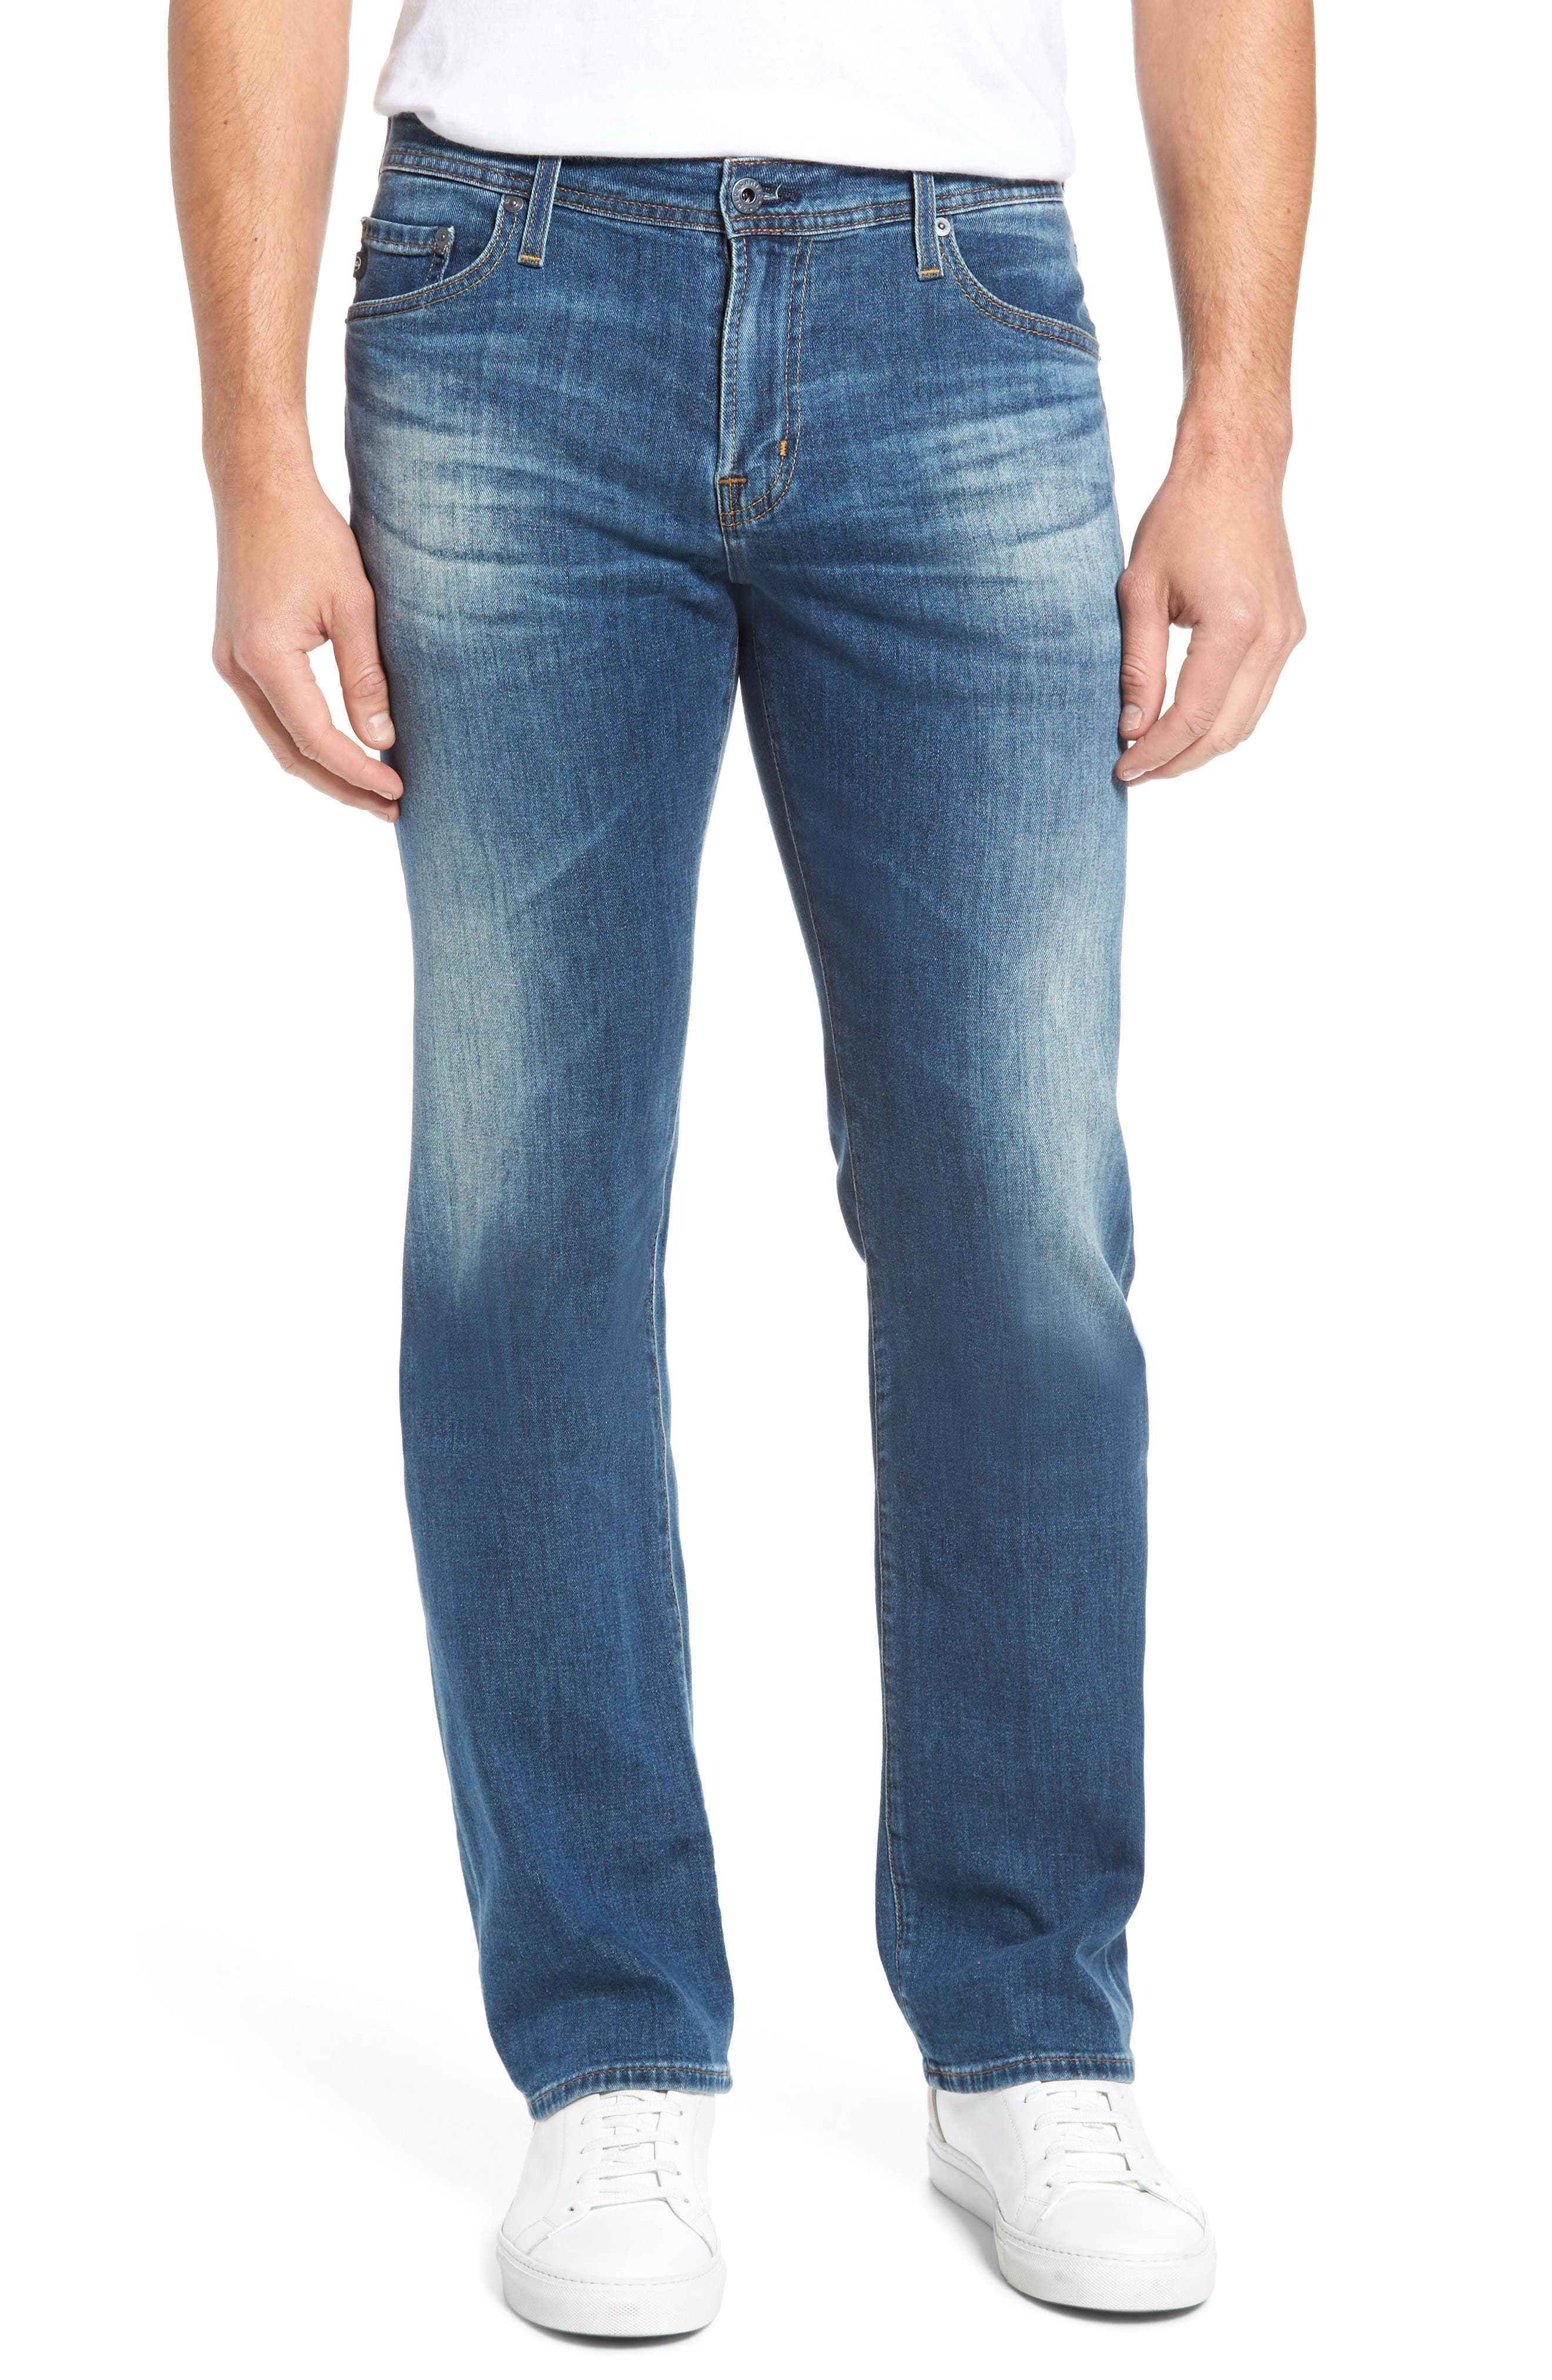 Protégé Relaxed Fit Jeans,                         Main,                         color, Four Rivers